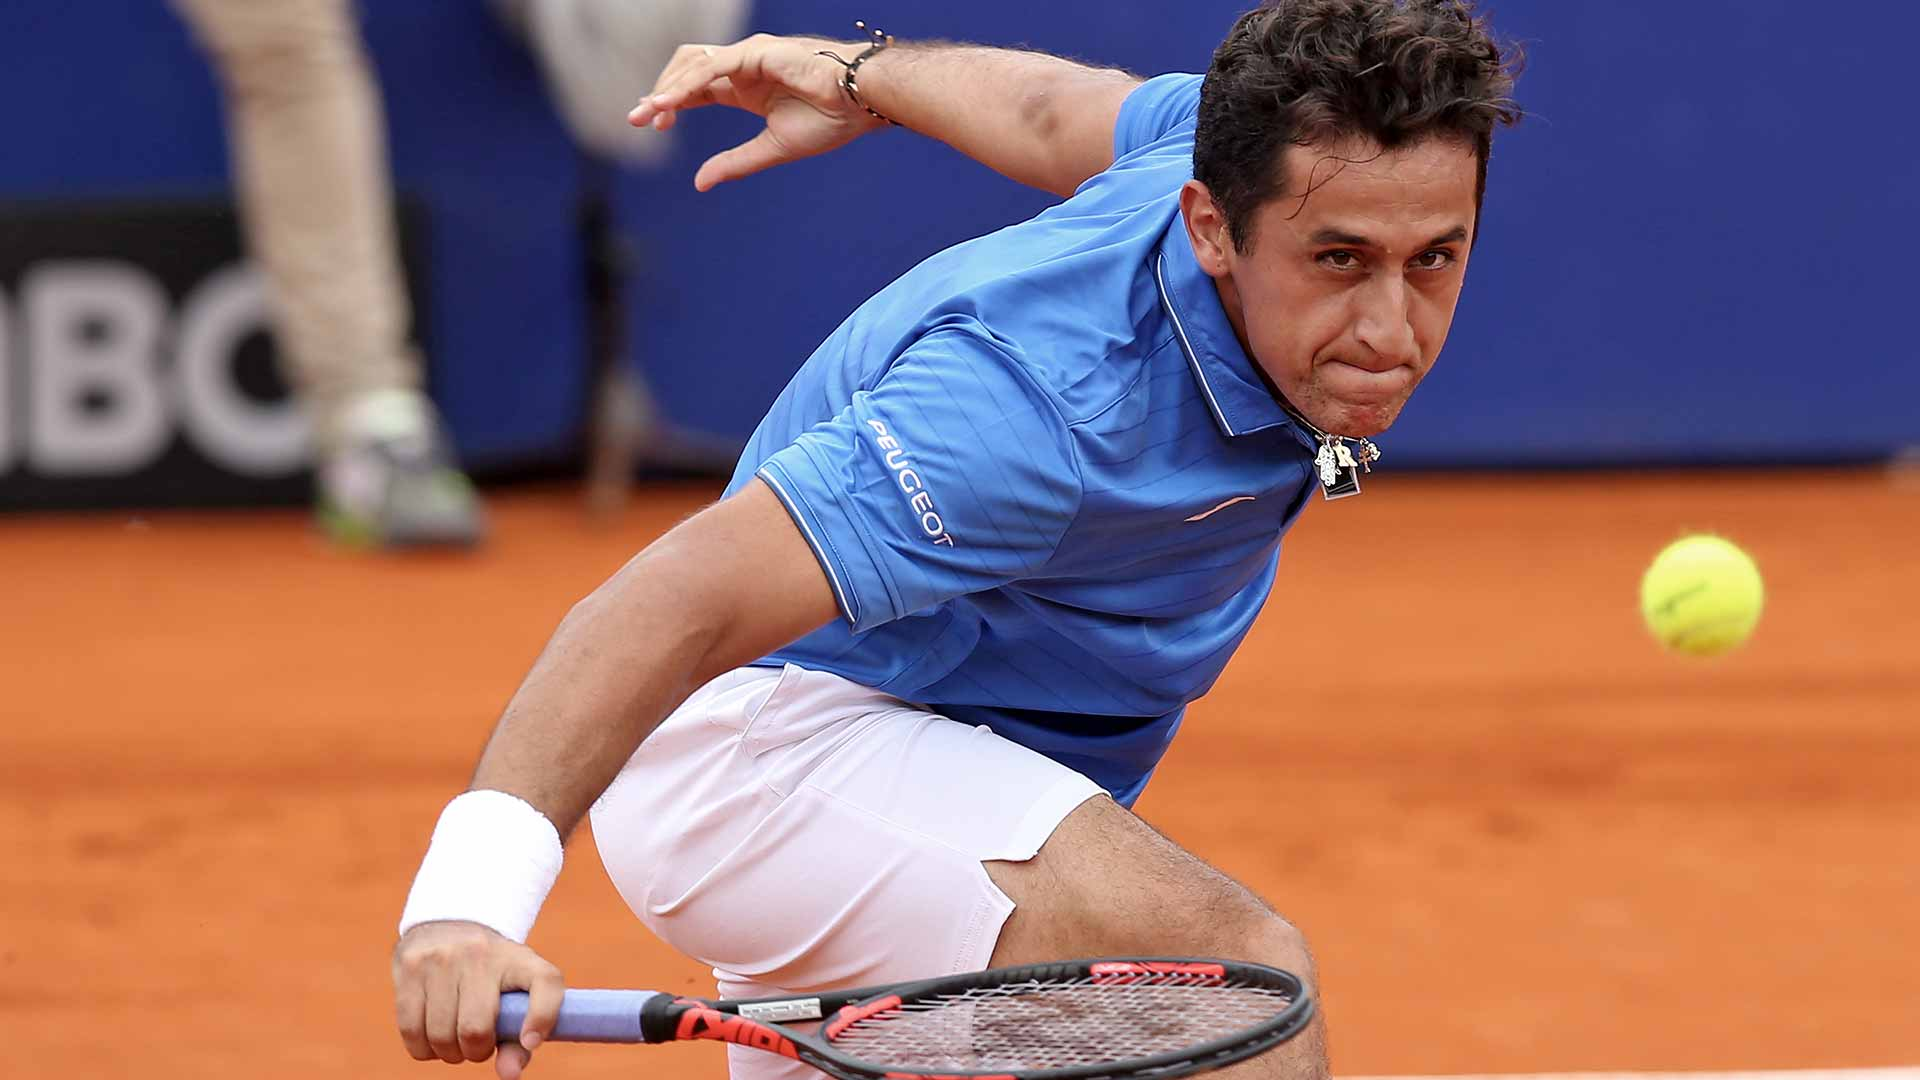 Nicolas Almagro enjoys a 6-3, 6-3 opening-round win in Buenos Aires.